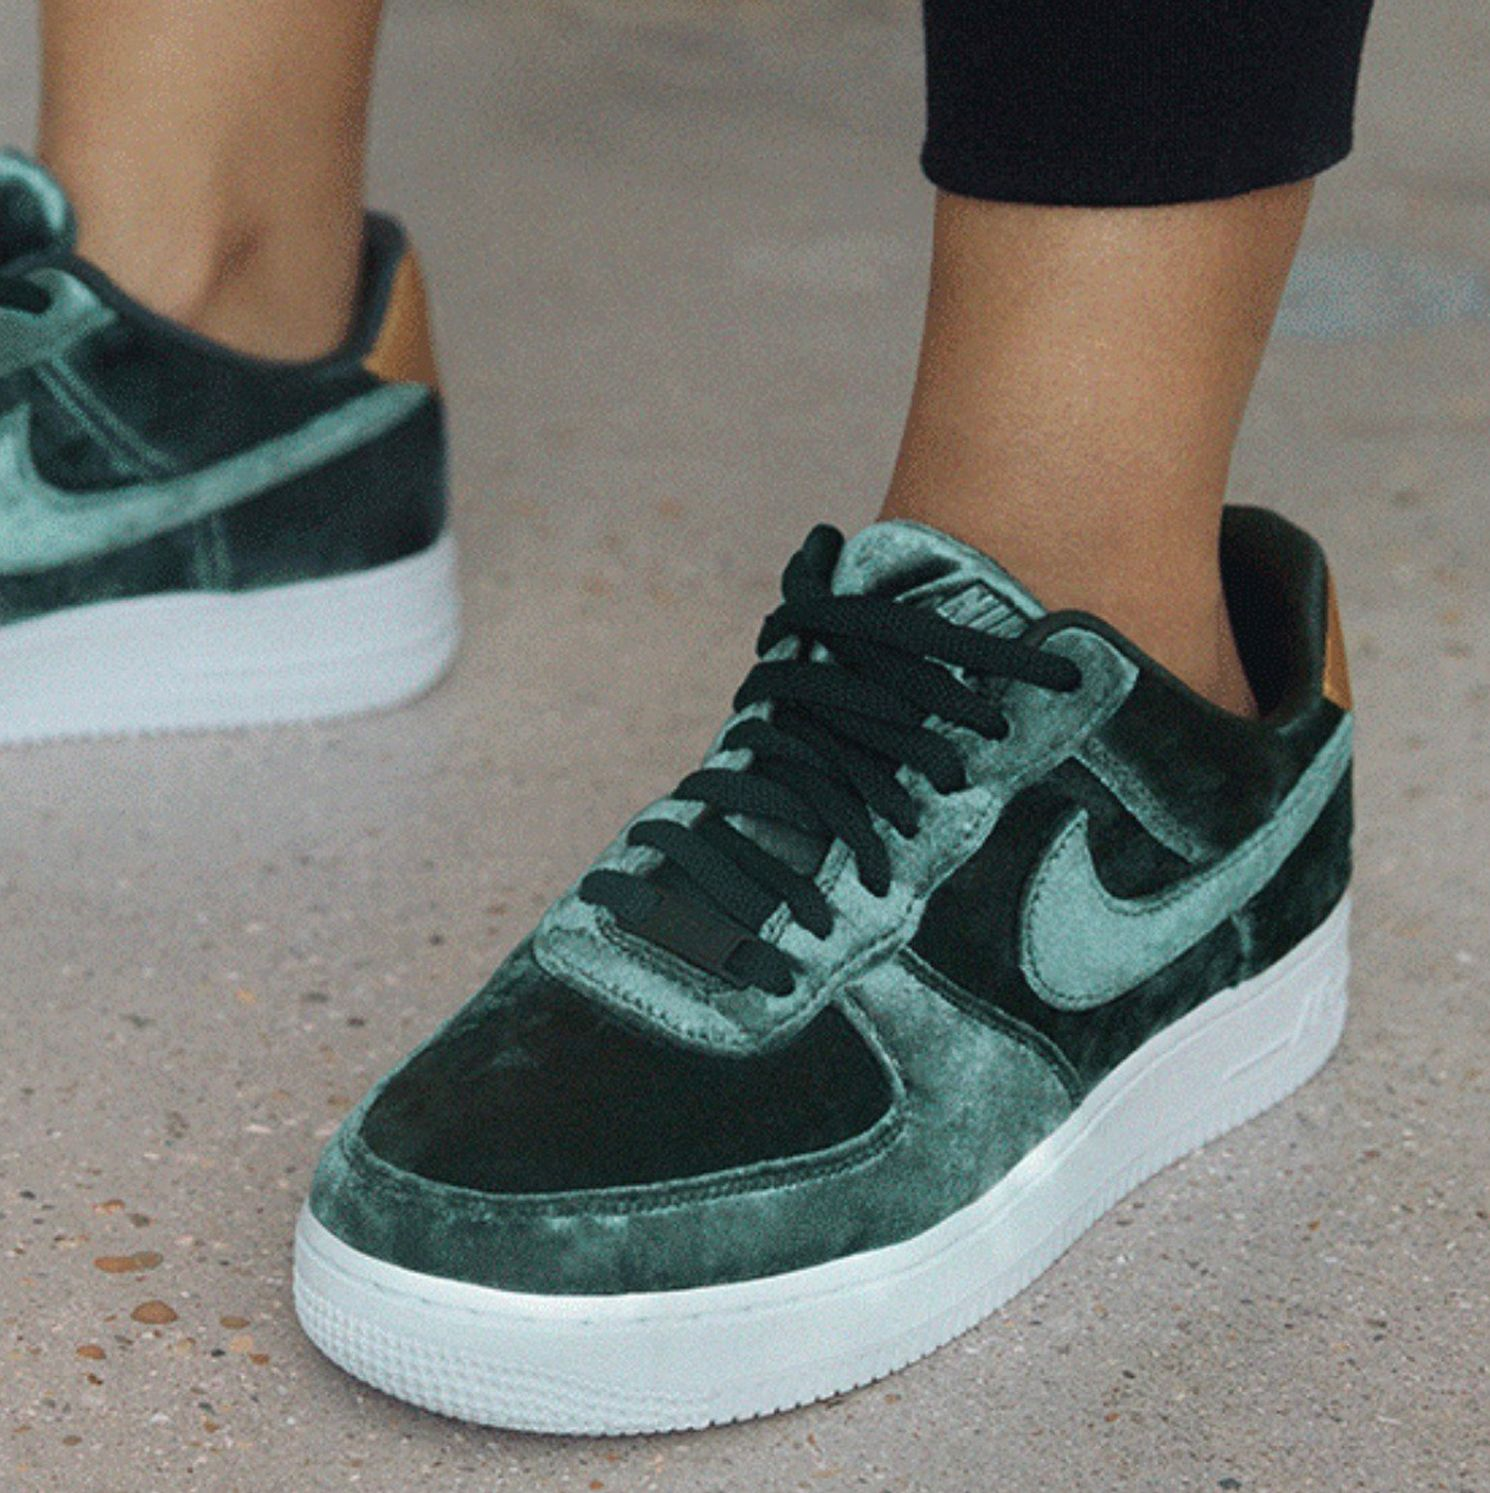 2957400b88e36 Sneakers women - Nike Air Force 1 velvet green | Shoes of all kinds ...